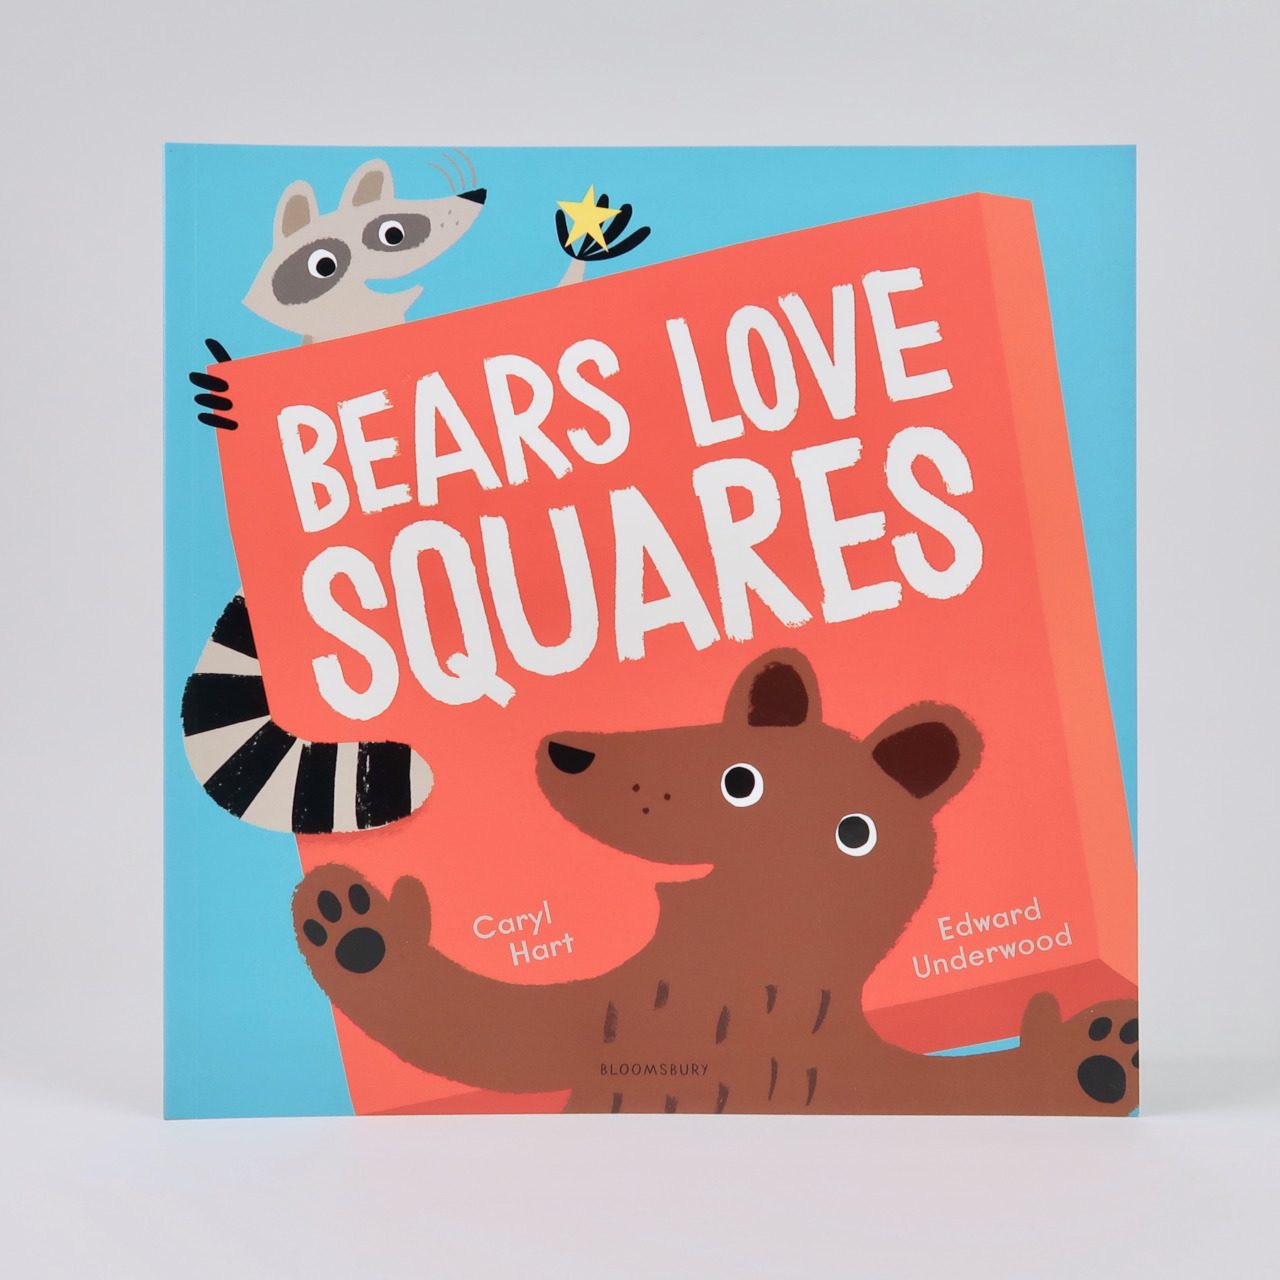 Bears Love Squares - Caryl Hart & Edward Underwood